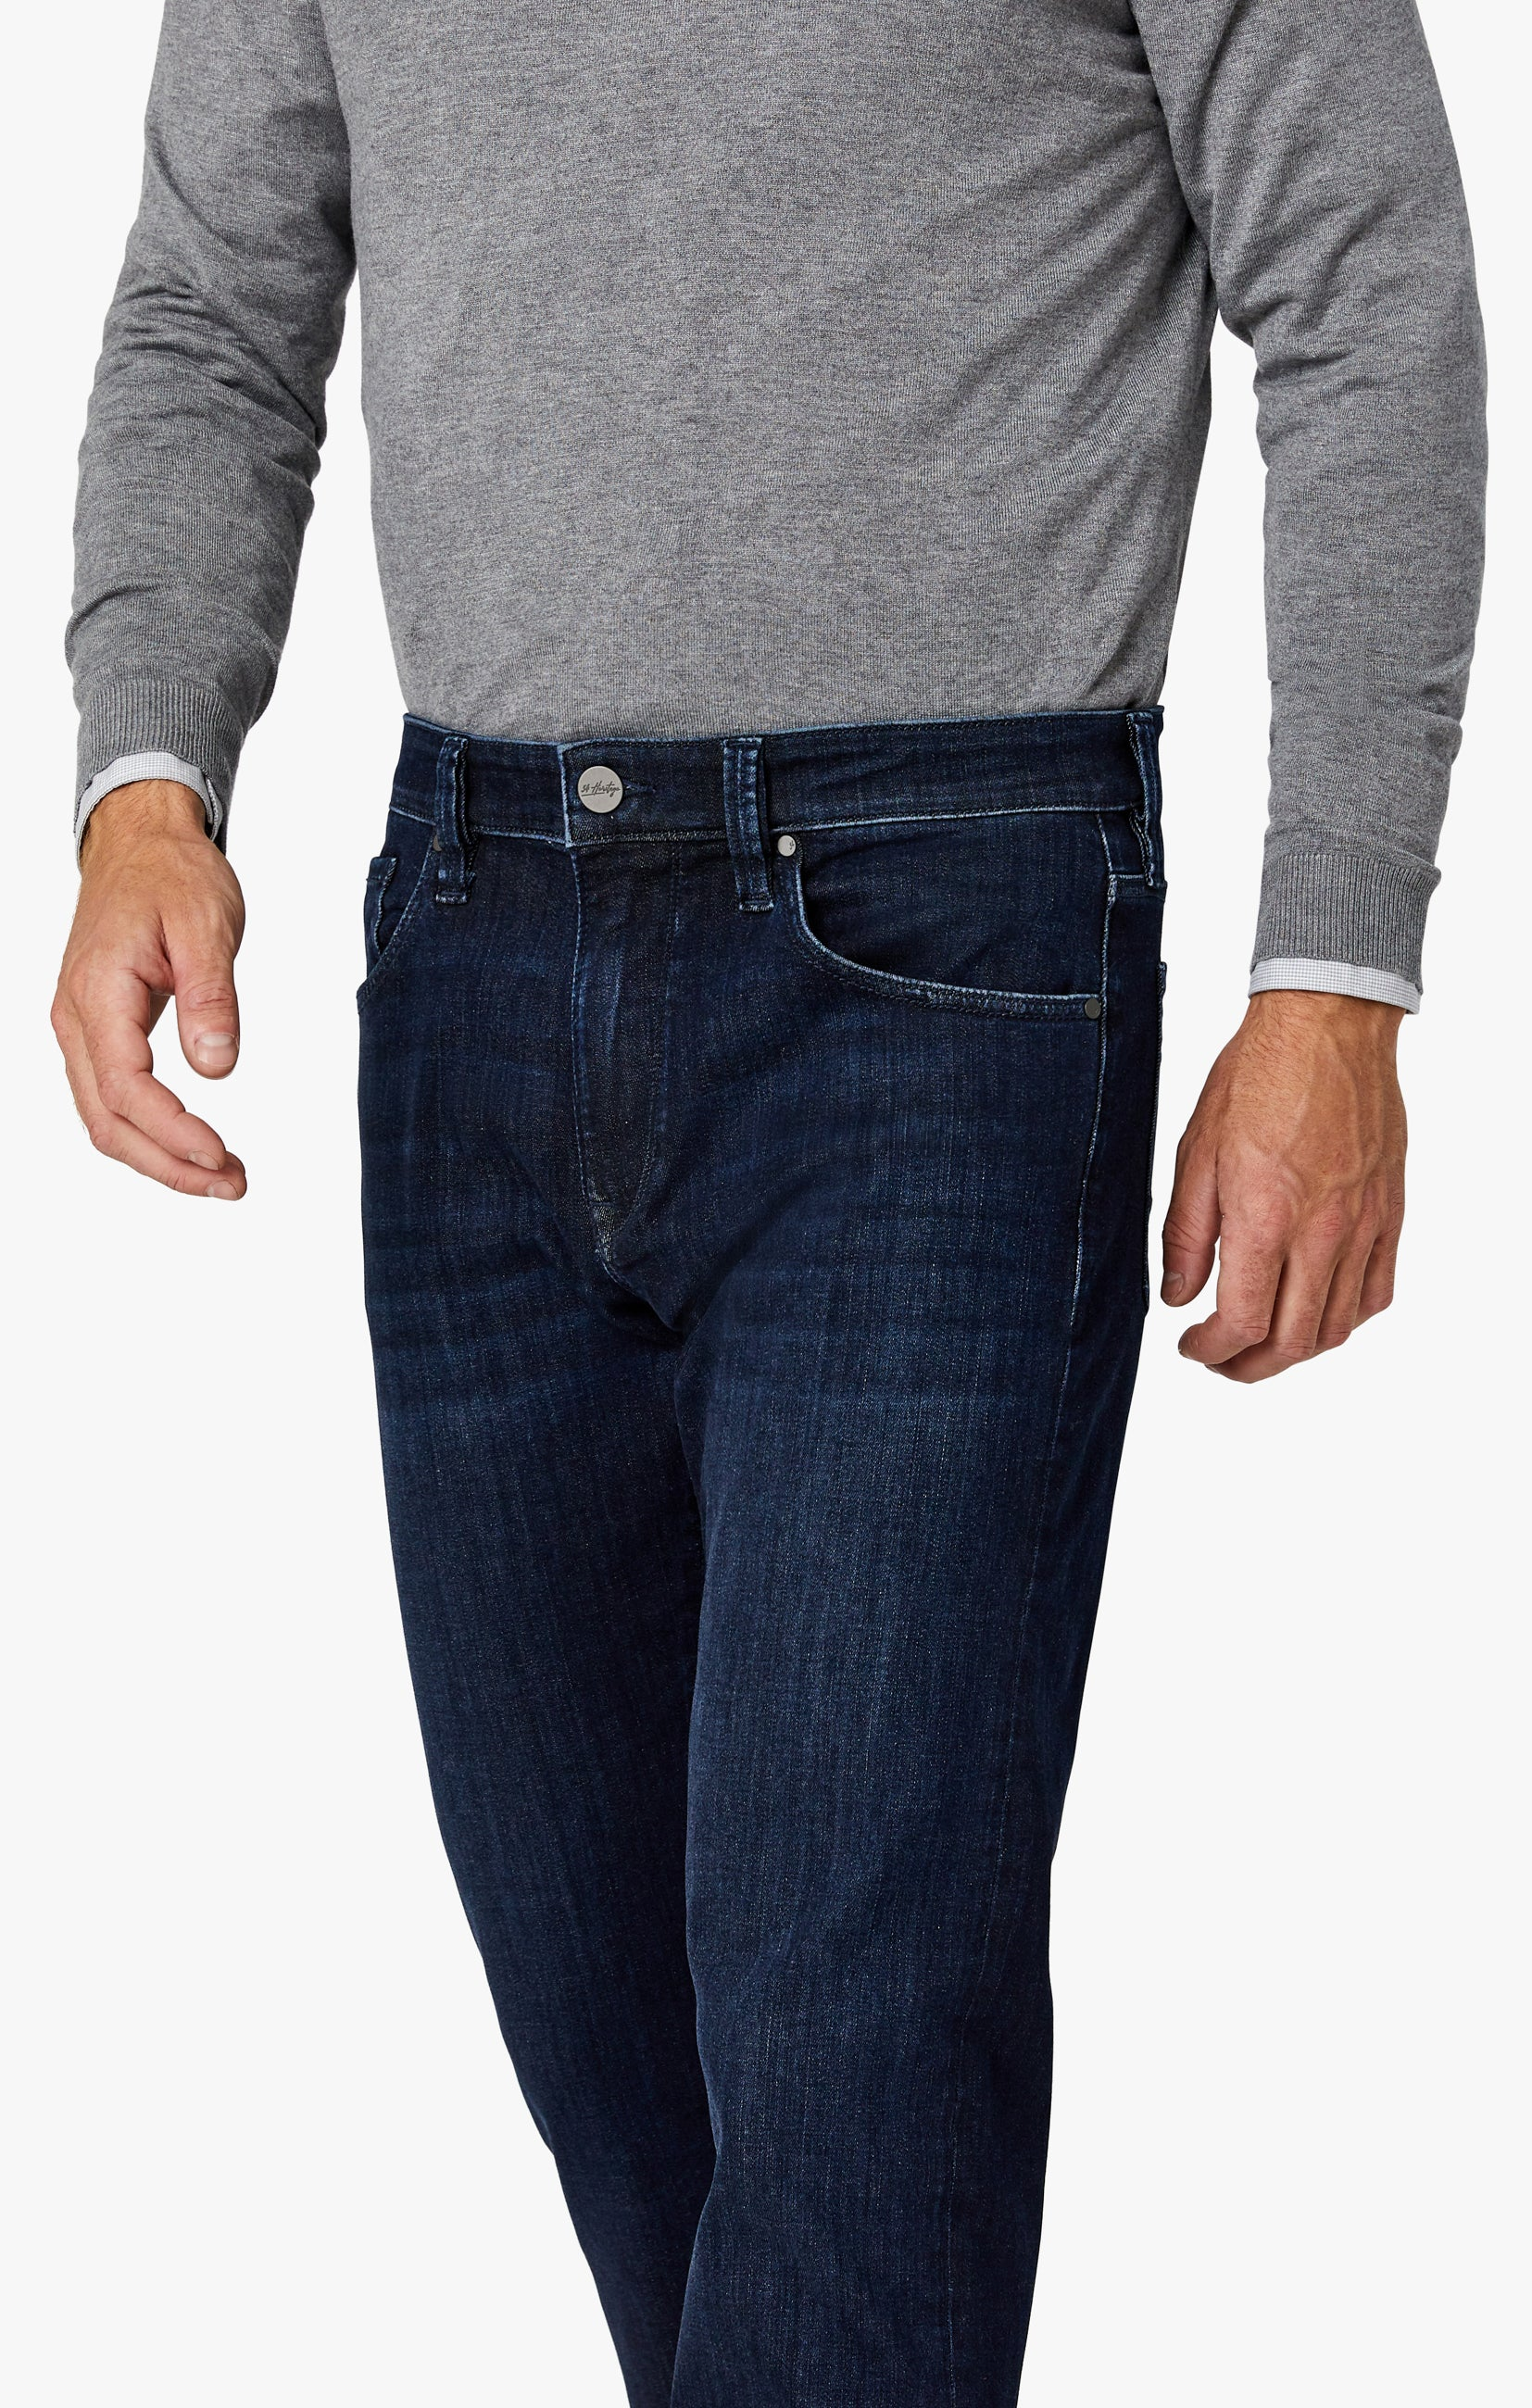 Charisma Relaxed Straight Jeans in Deep Urban Image 7